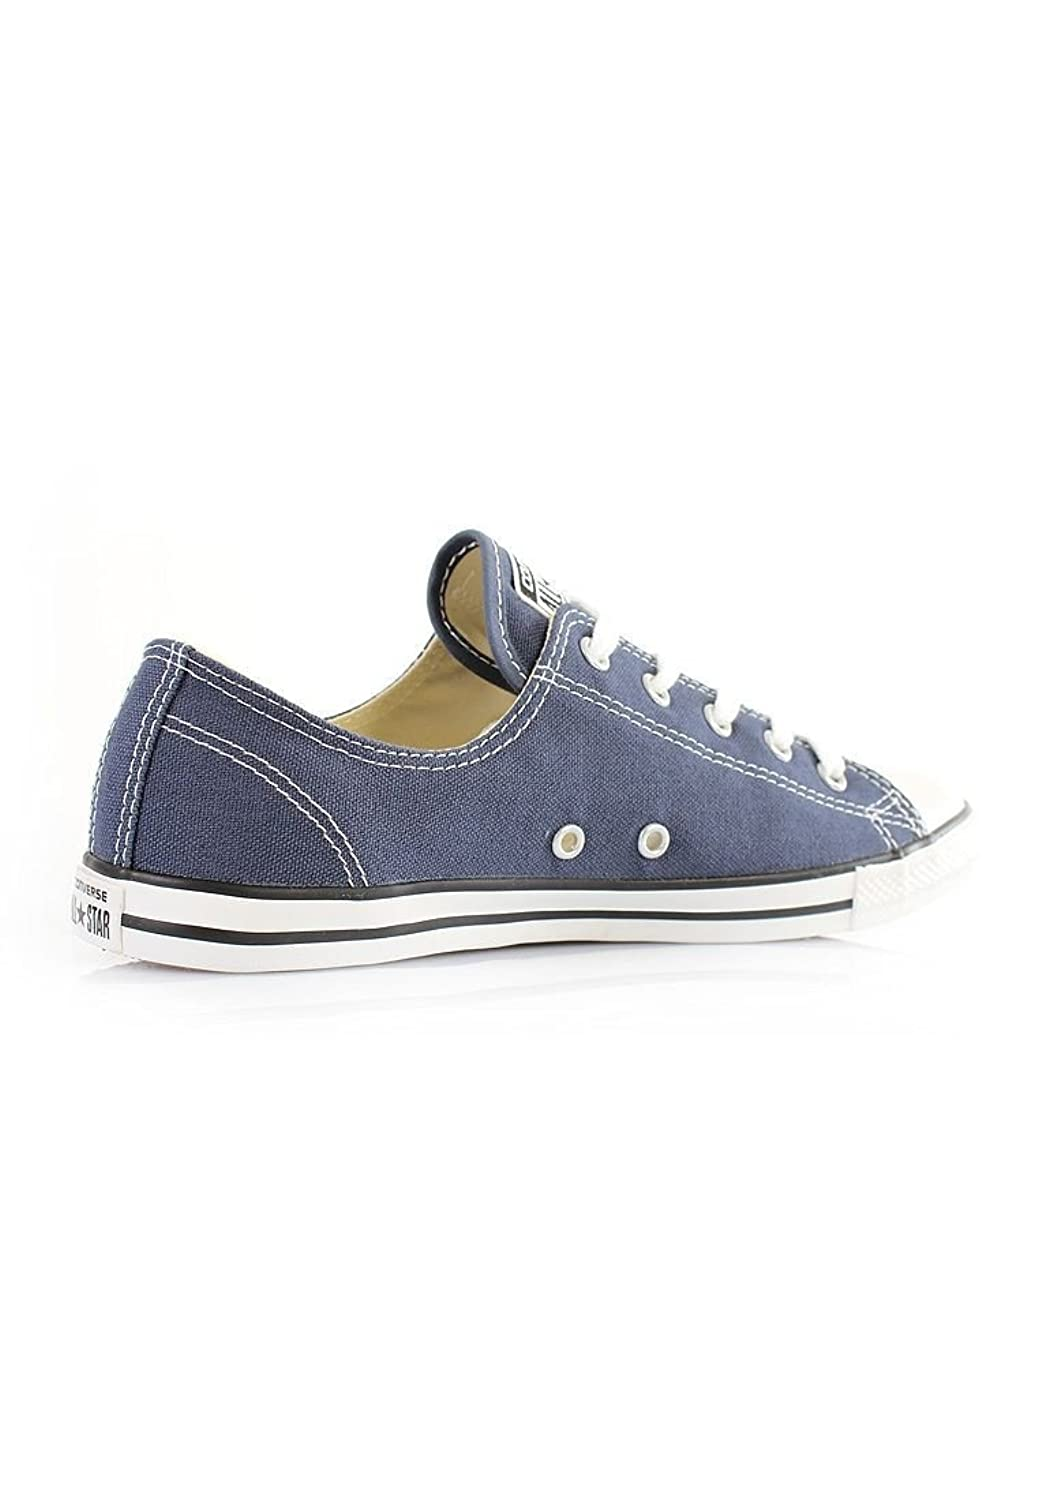 Damen Sneaker, blau, Blau - Blau - Dress Blues - Größe: 37.5 EU/6.5 US W Converse